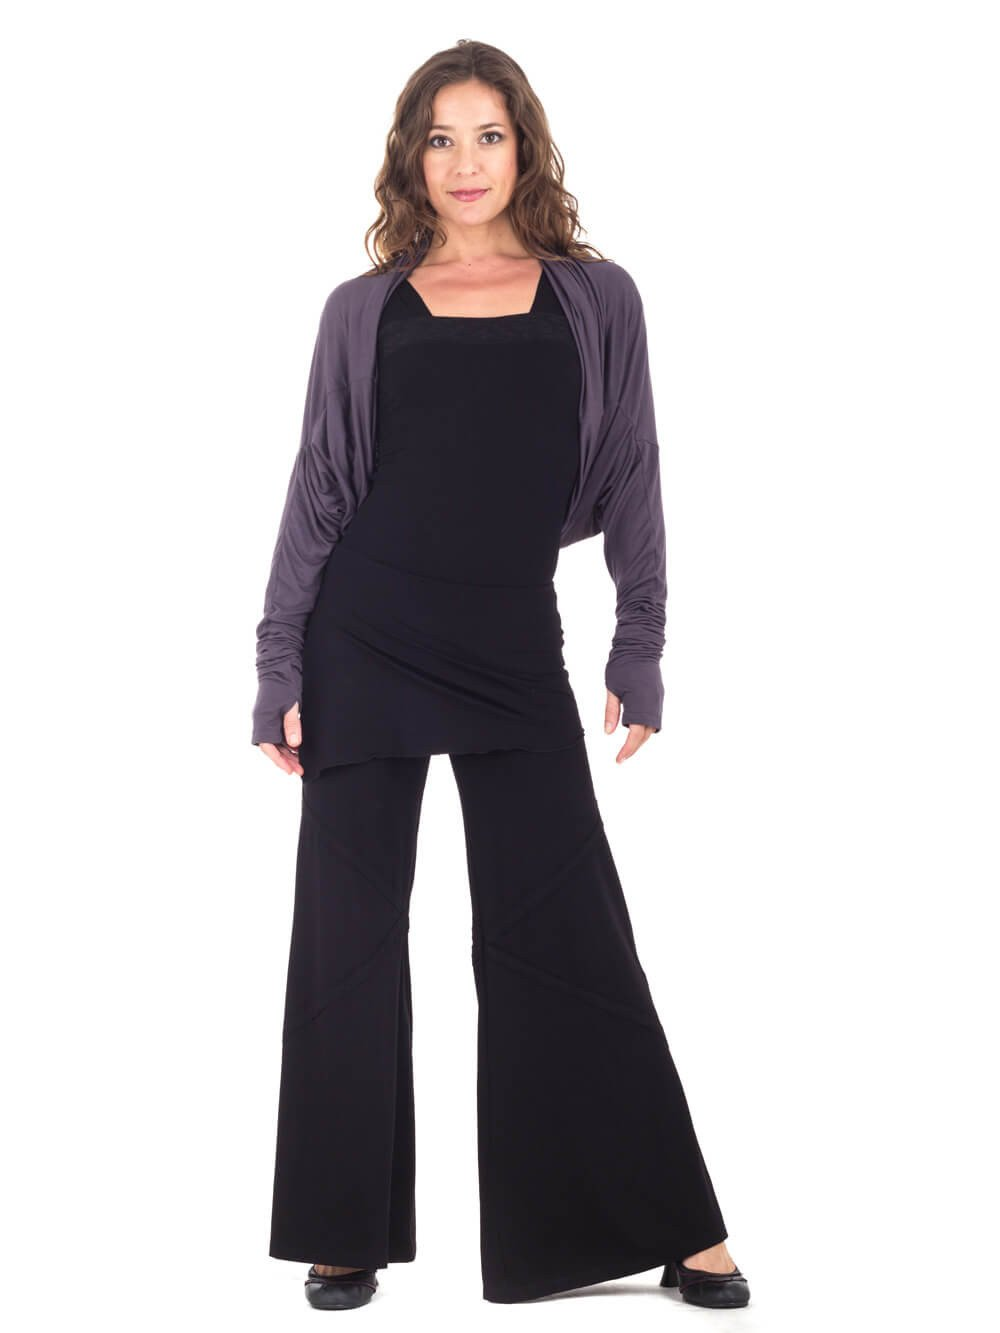 Womens Rayon Jersey Boyfriend Top in Steel Grey as a Shrug with Wide Leg Panel Rayon Jersey Pants in Black